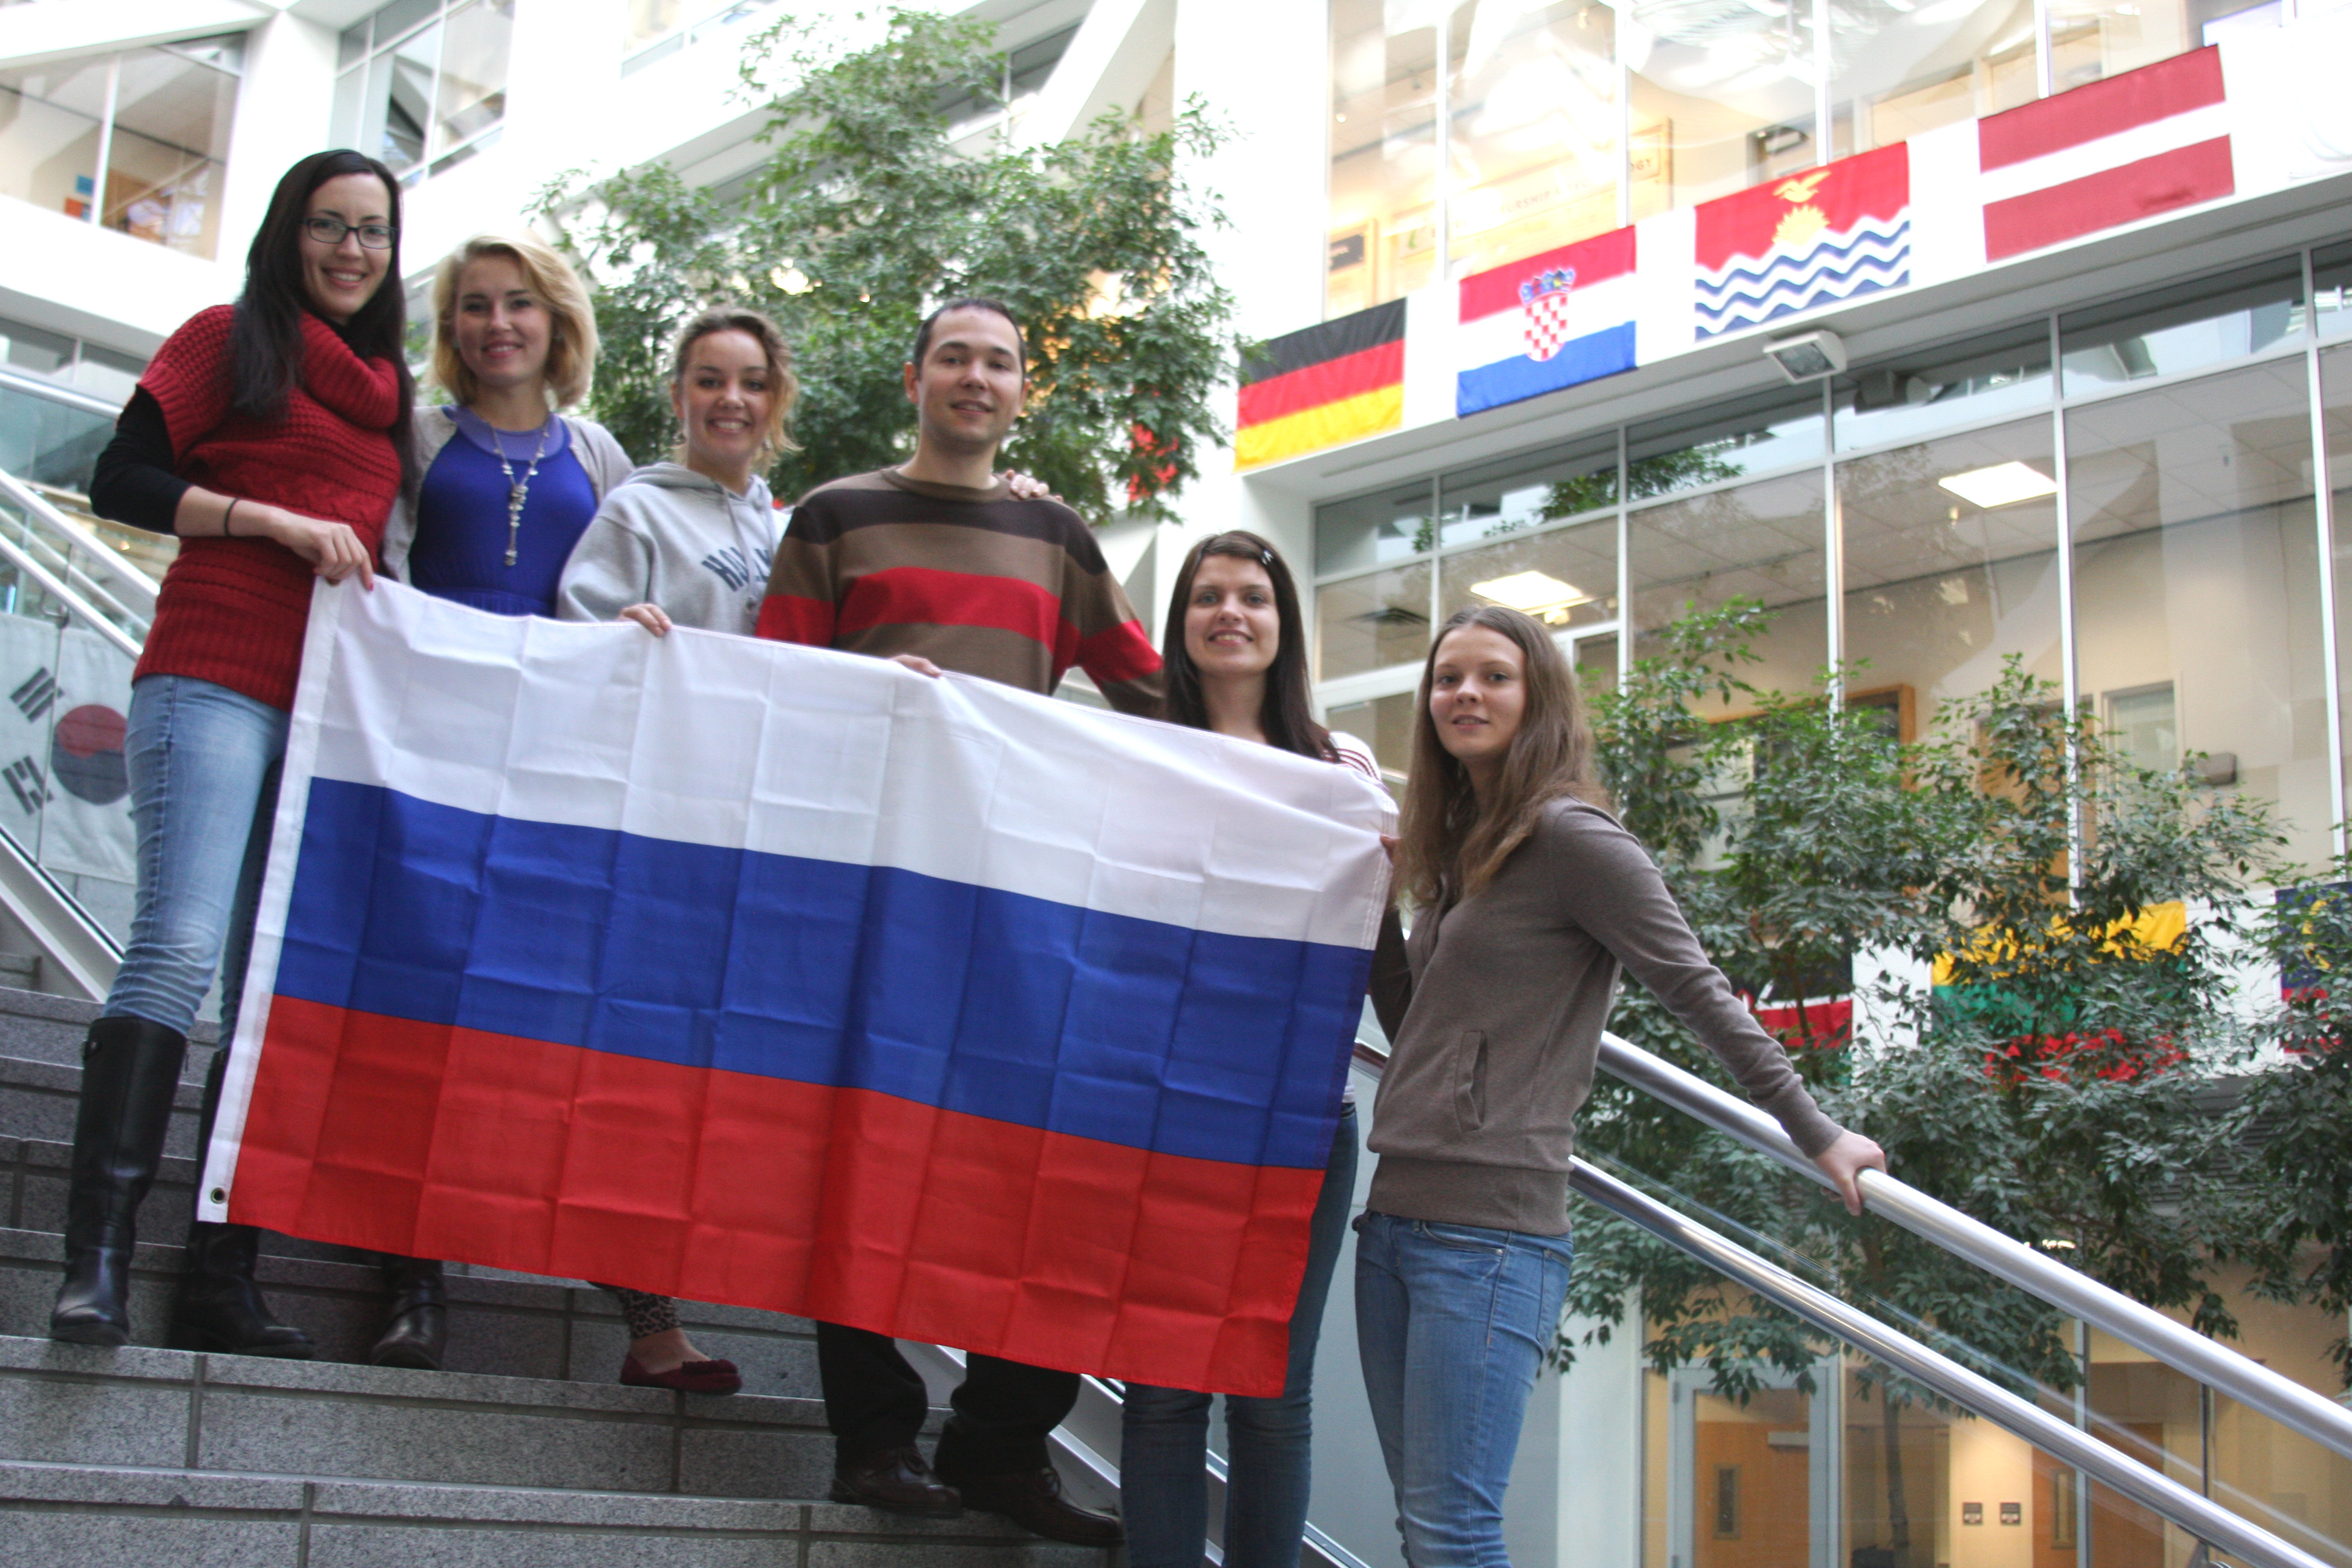 Left to right: Elena Sarokina, Polina Vasilevskaya, Elne Filatova, Viktor Arfanov, Tatiana Ignatova, Valentina Orlikhina. The Russian contingency of BYU students show off some extra Russia pride as the world's attention turns to the Sochi Olypics.  Photo by Natalie Stoker.